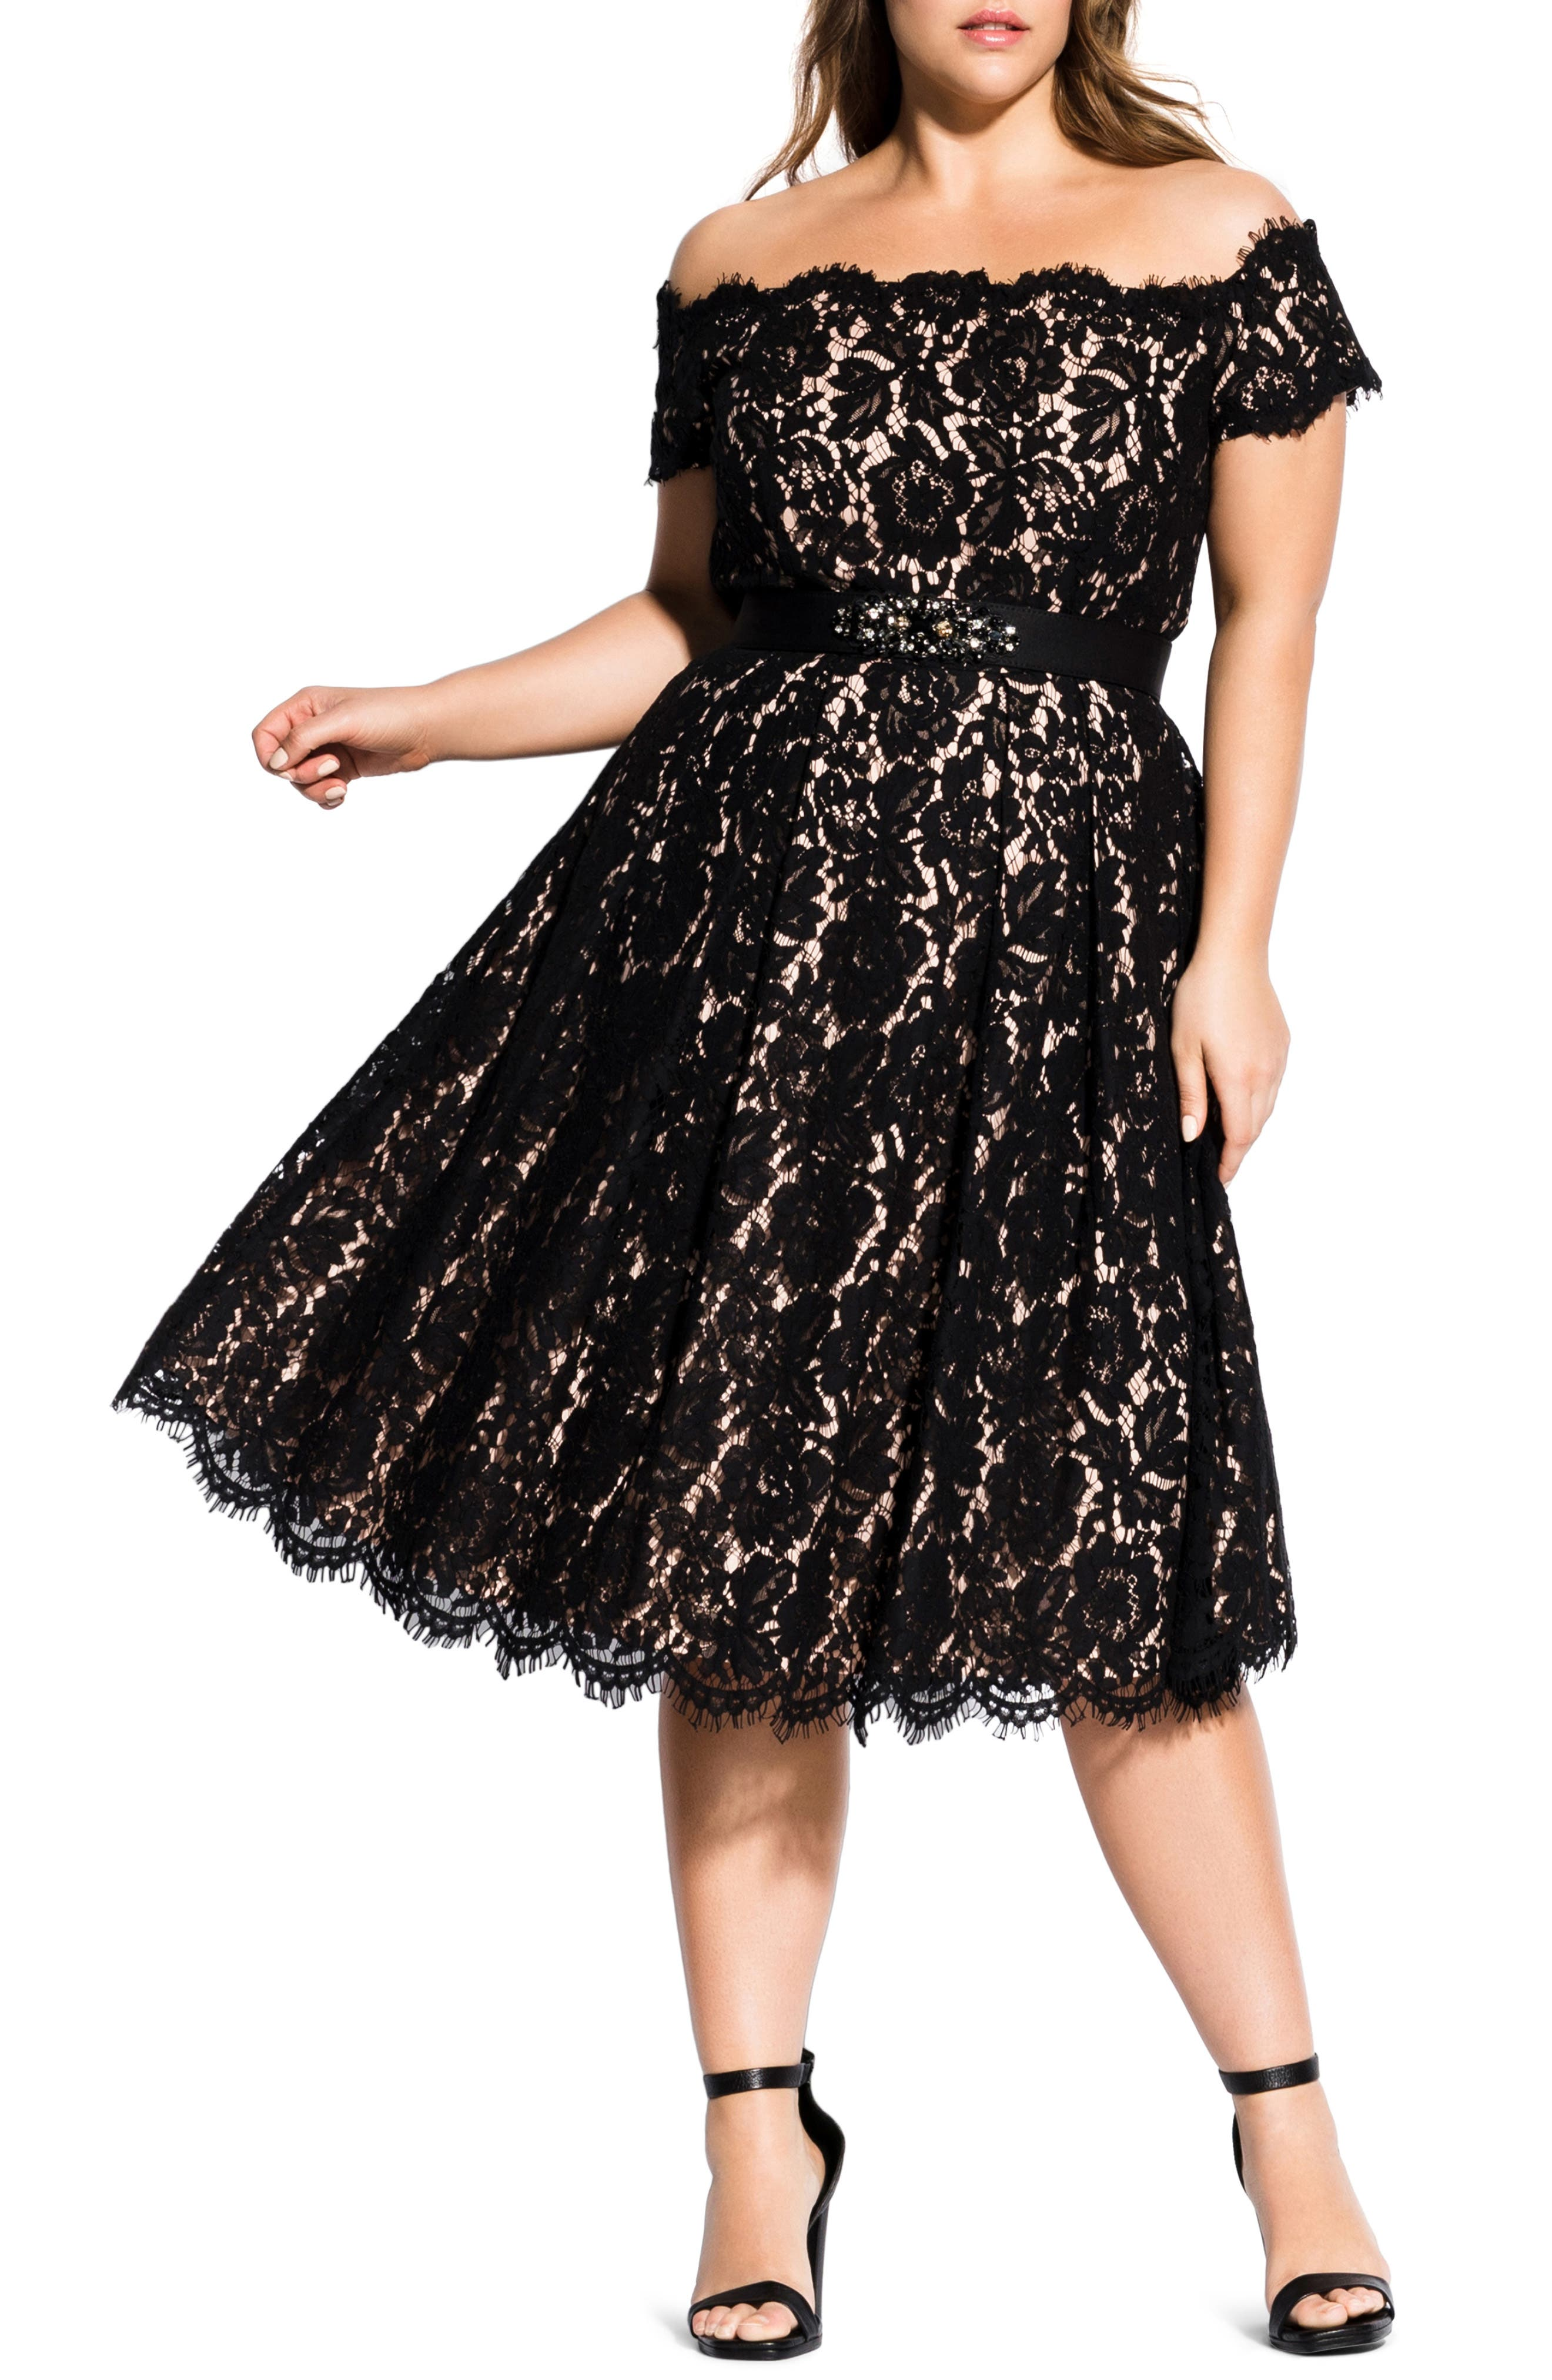 1950s Formal Dresses & Evening Gowns to Buy Plus Size Womens City Chic Off The Shoulder Lace Dreams Midi Dress $169.00 AT vintagedancer.com